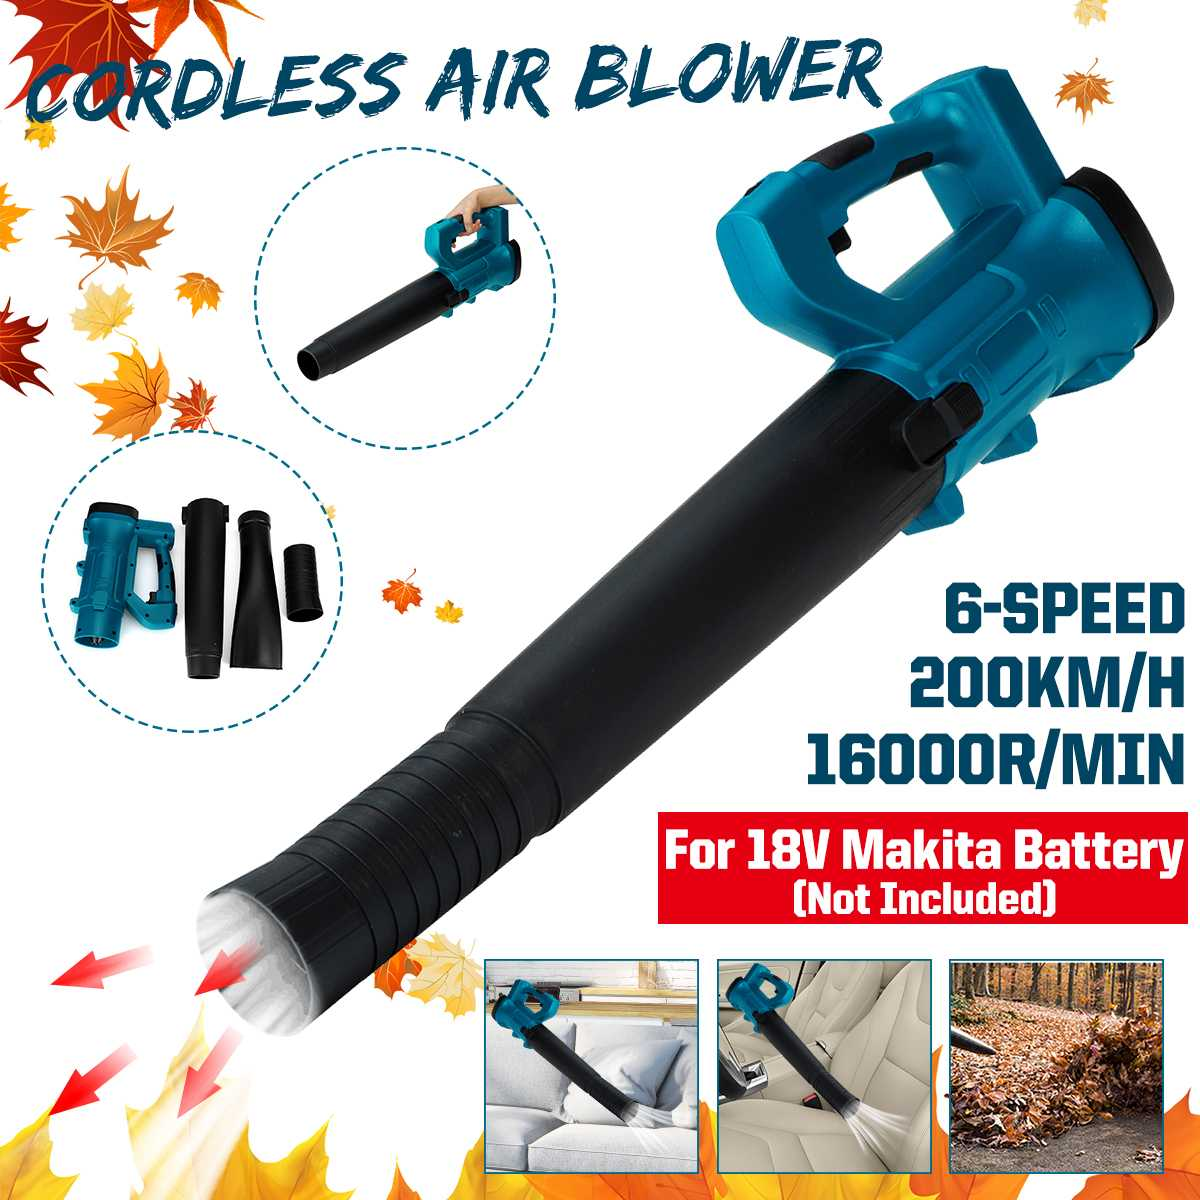 16000r/min Industry Cordless Blower Air Snow Blower Dust Leaf Collector Blowing Sweeper Garden Tools For 18V Makita Battery